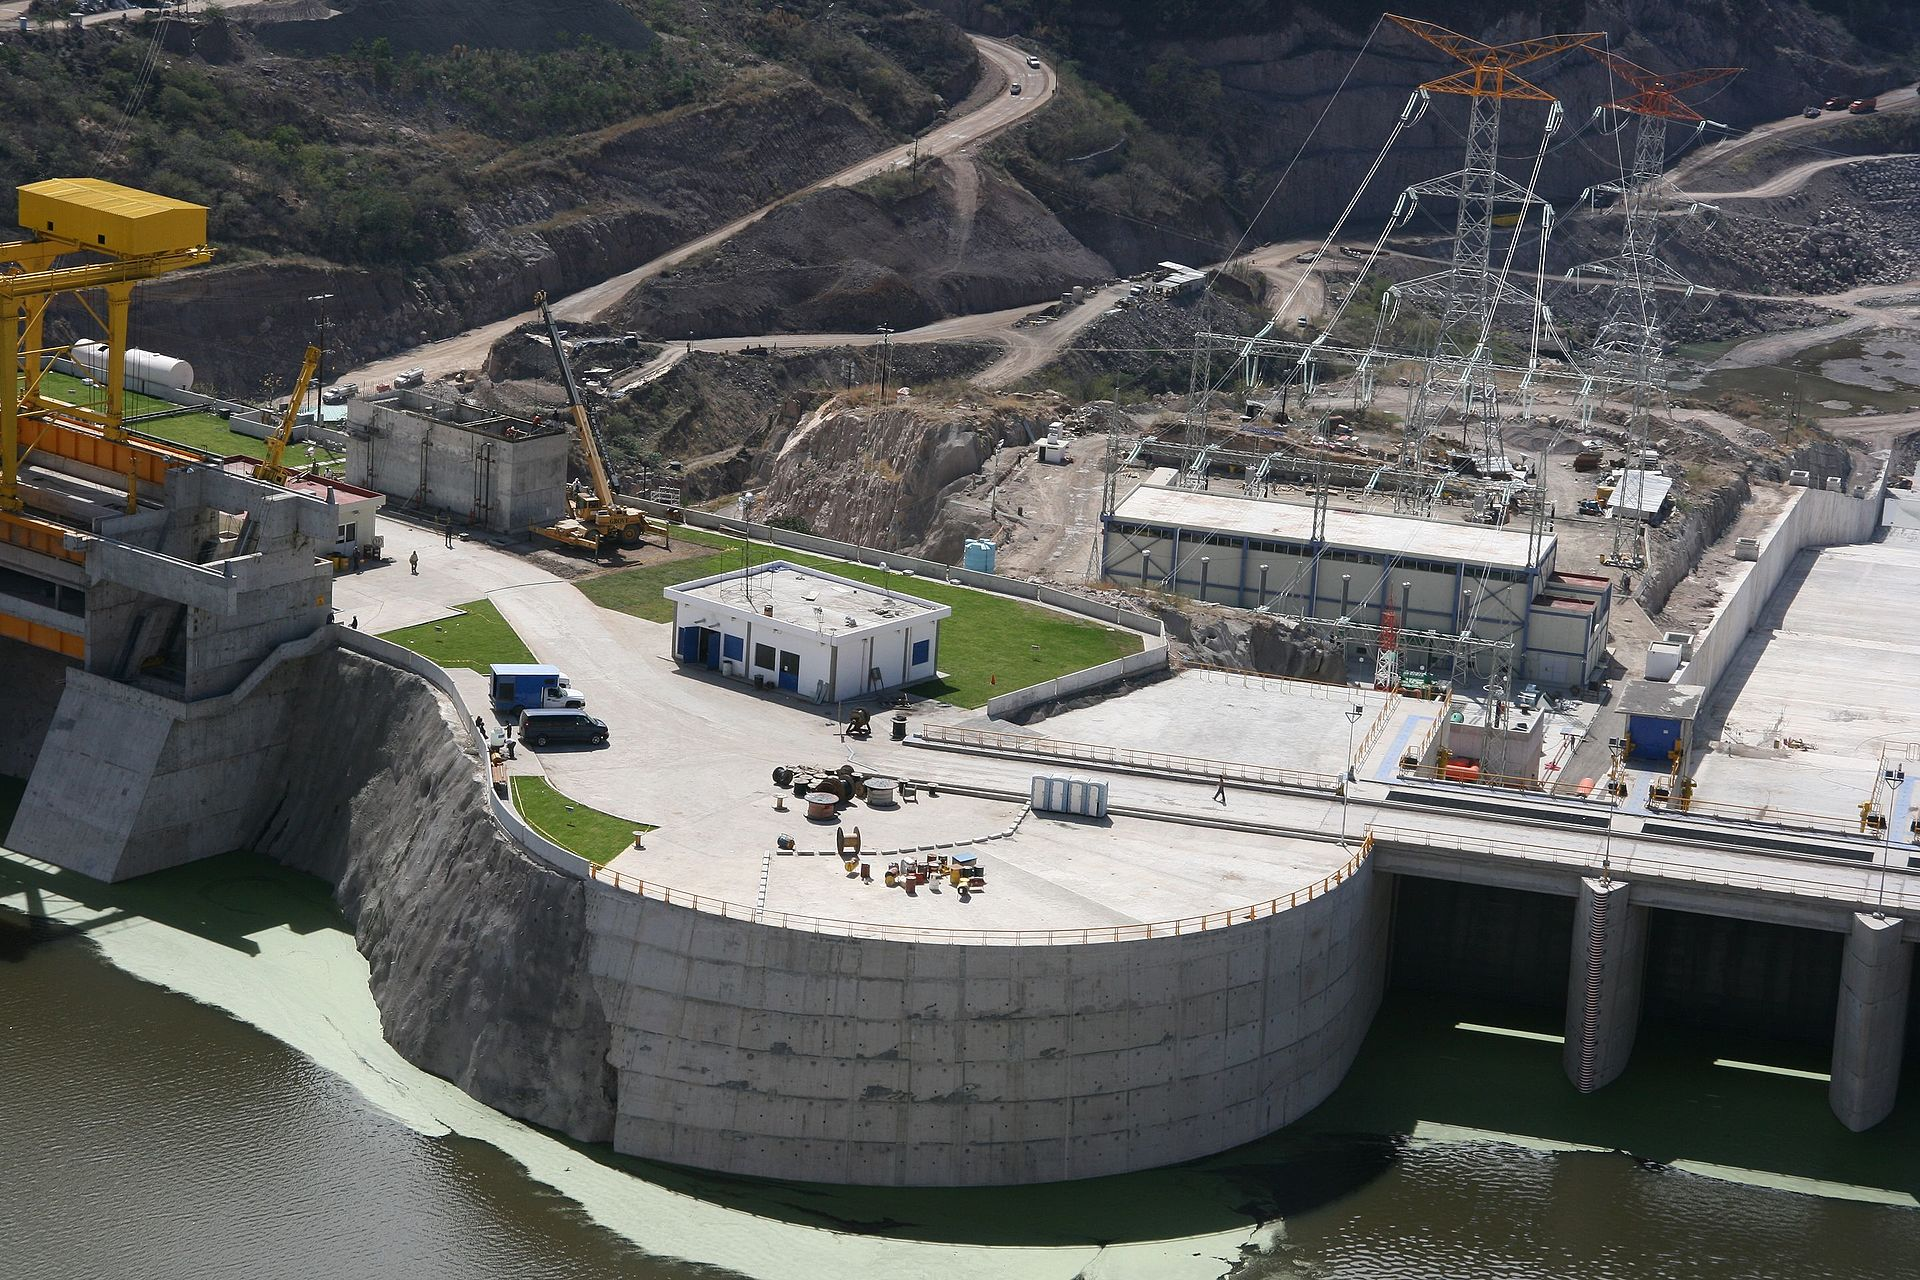 El Cajón Dam. Image by Jack Fiallos, CC BY 2.0, https://commons.wikimedia.org/w/index.php?curid=54865738